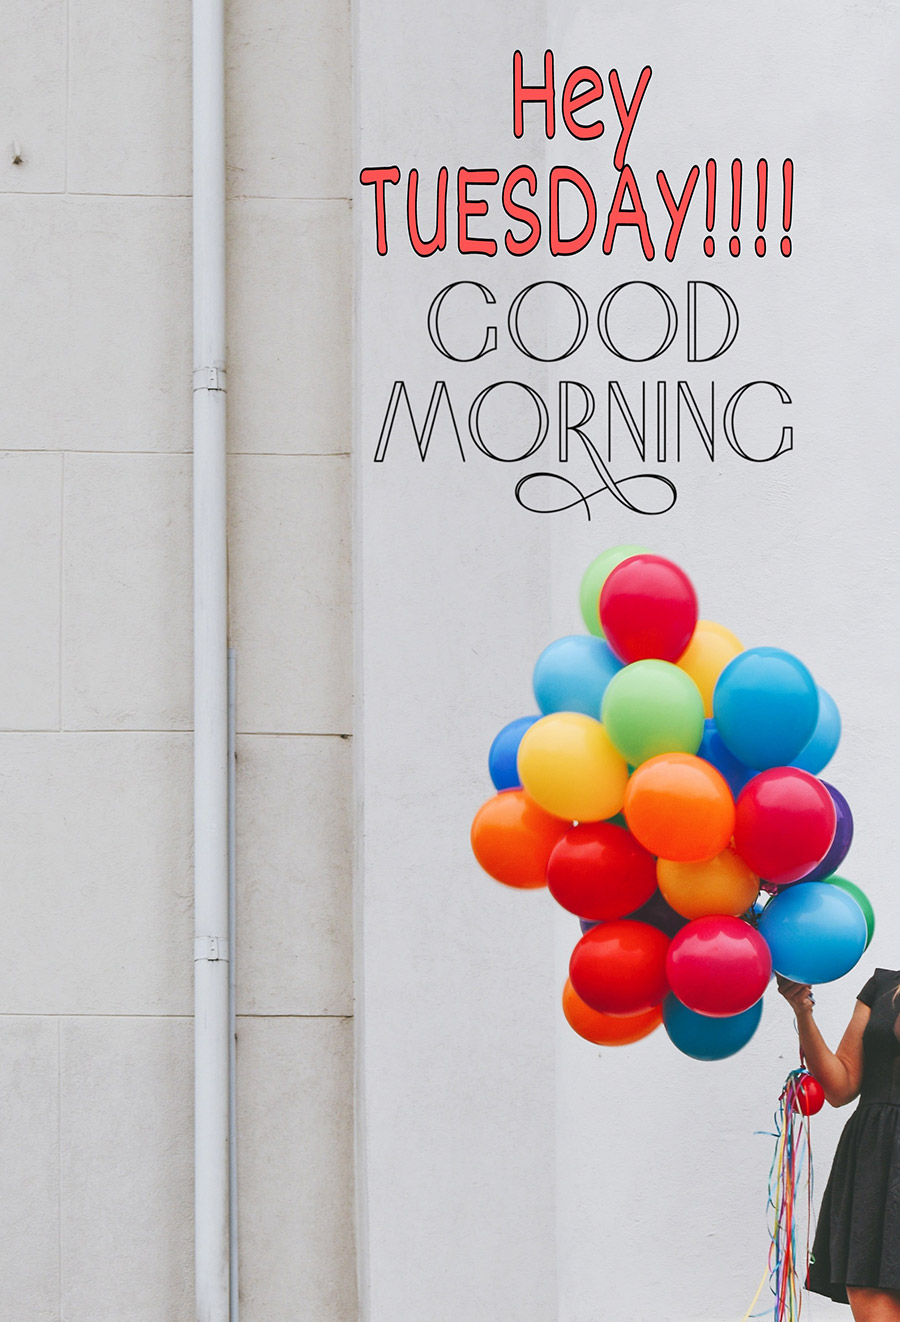 Good morning tuesday image with girl holding a bunch of balloons